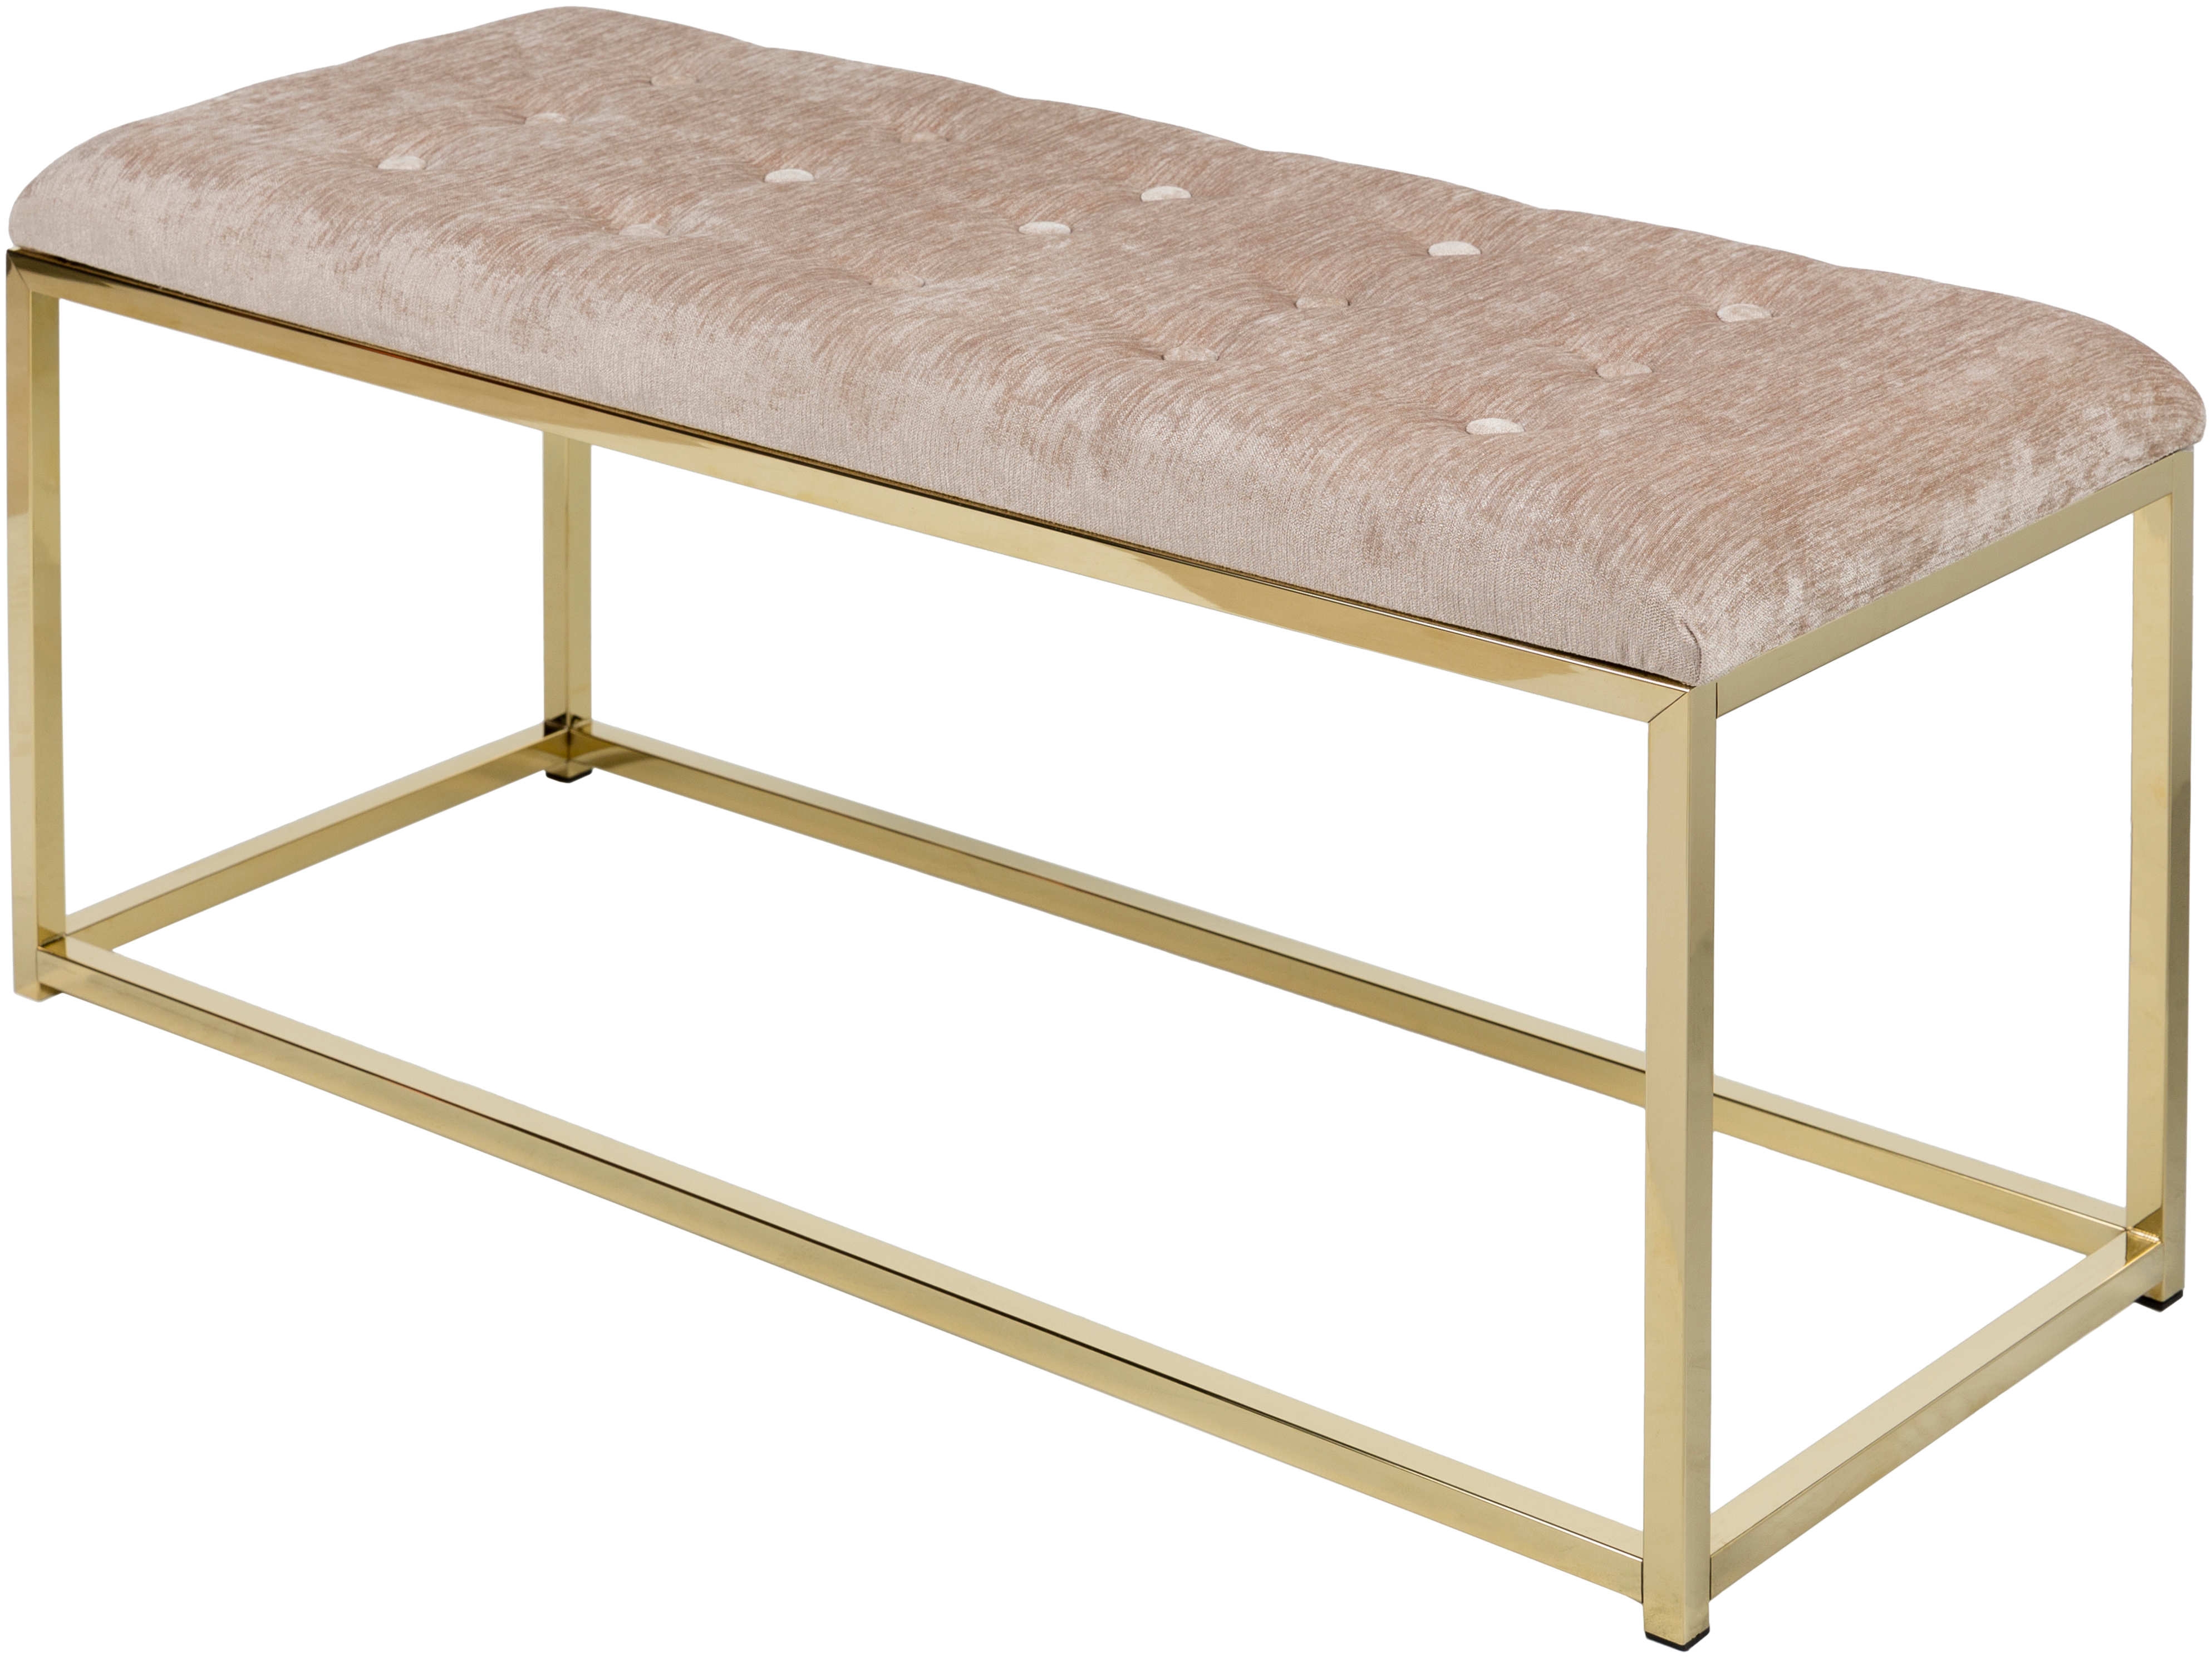 surya rigsby bench in taupe finish rig-001